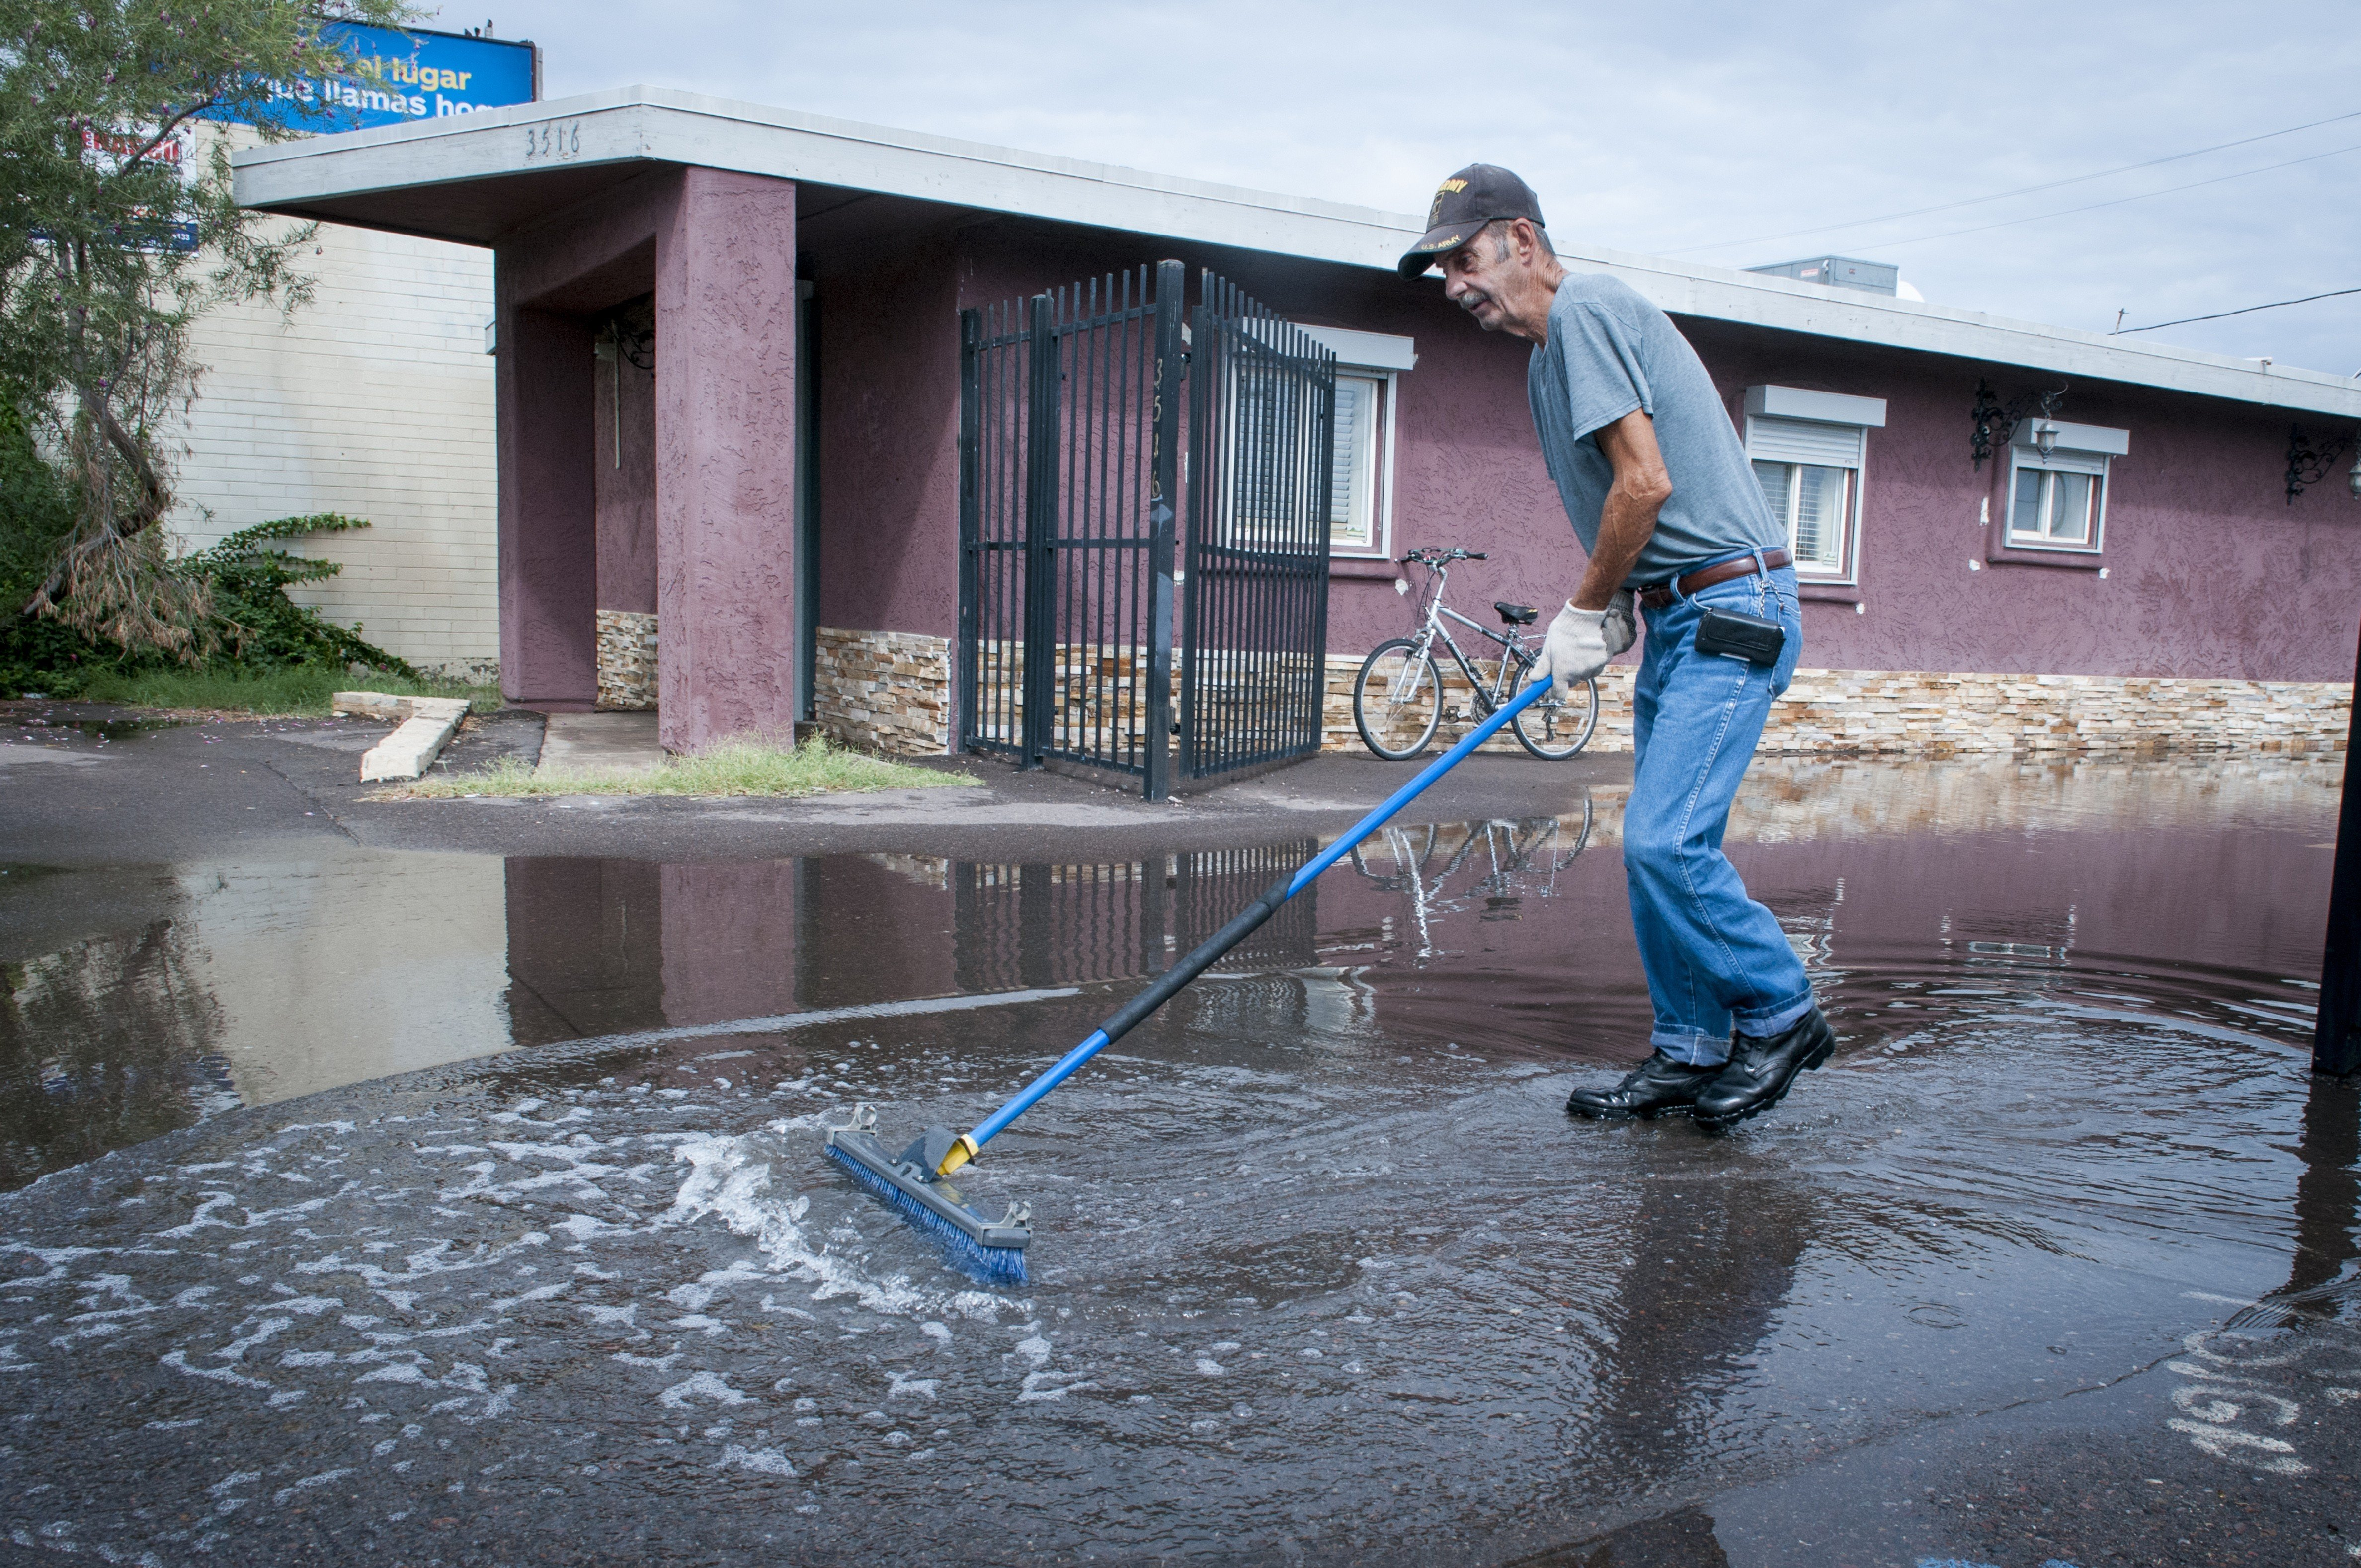 A Phoenix resident clears water from the flooded parking lot of a women's clinic on McDowell Rd. in Central Phoenix, Ariz. on Sept. 8, 2014.